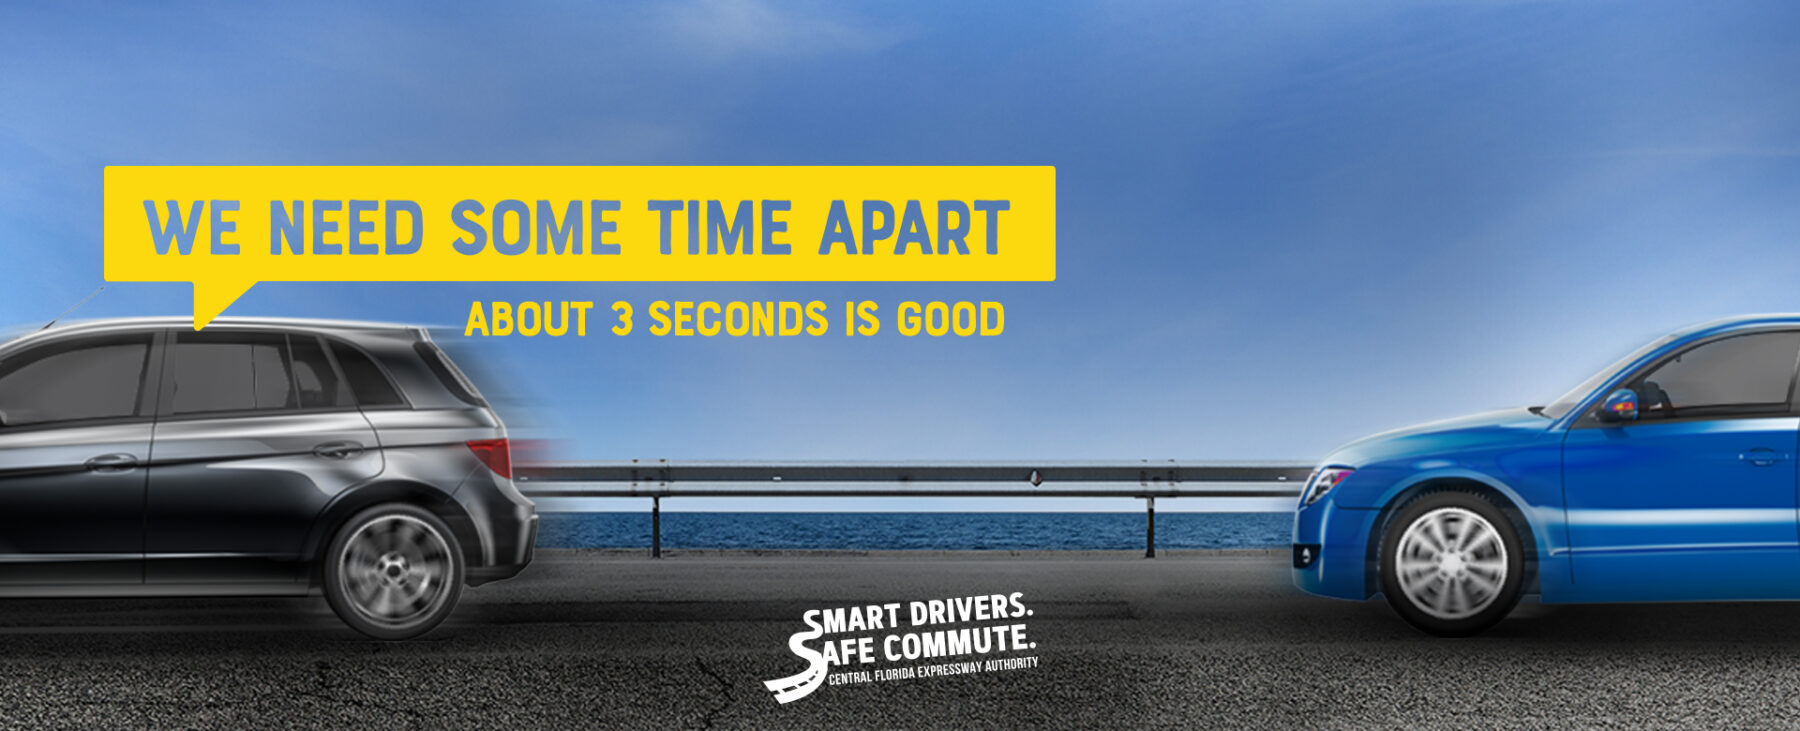 We Need Time Apart: About 3 seconds is good: Smart Drivers, Safe Commute.